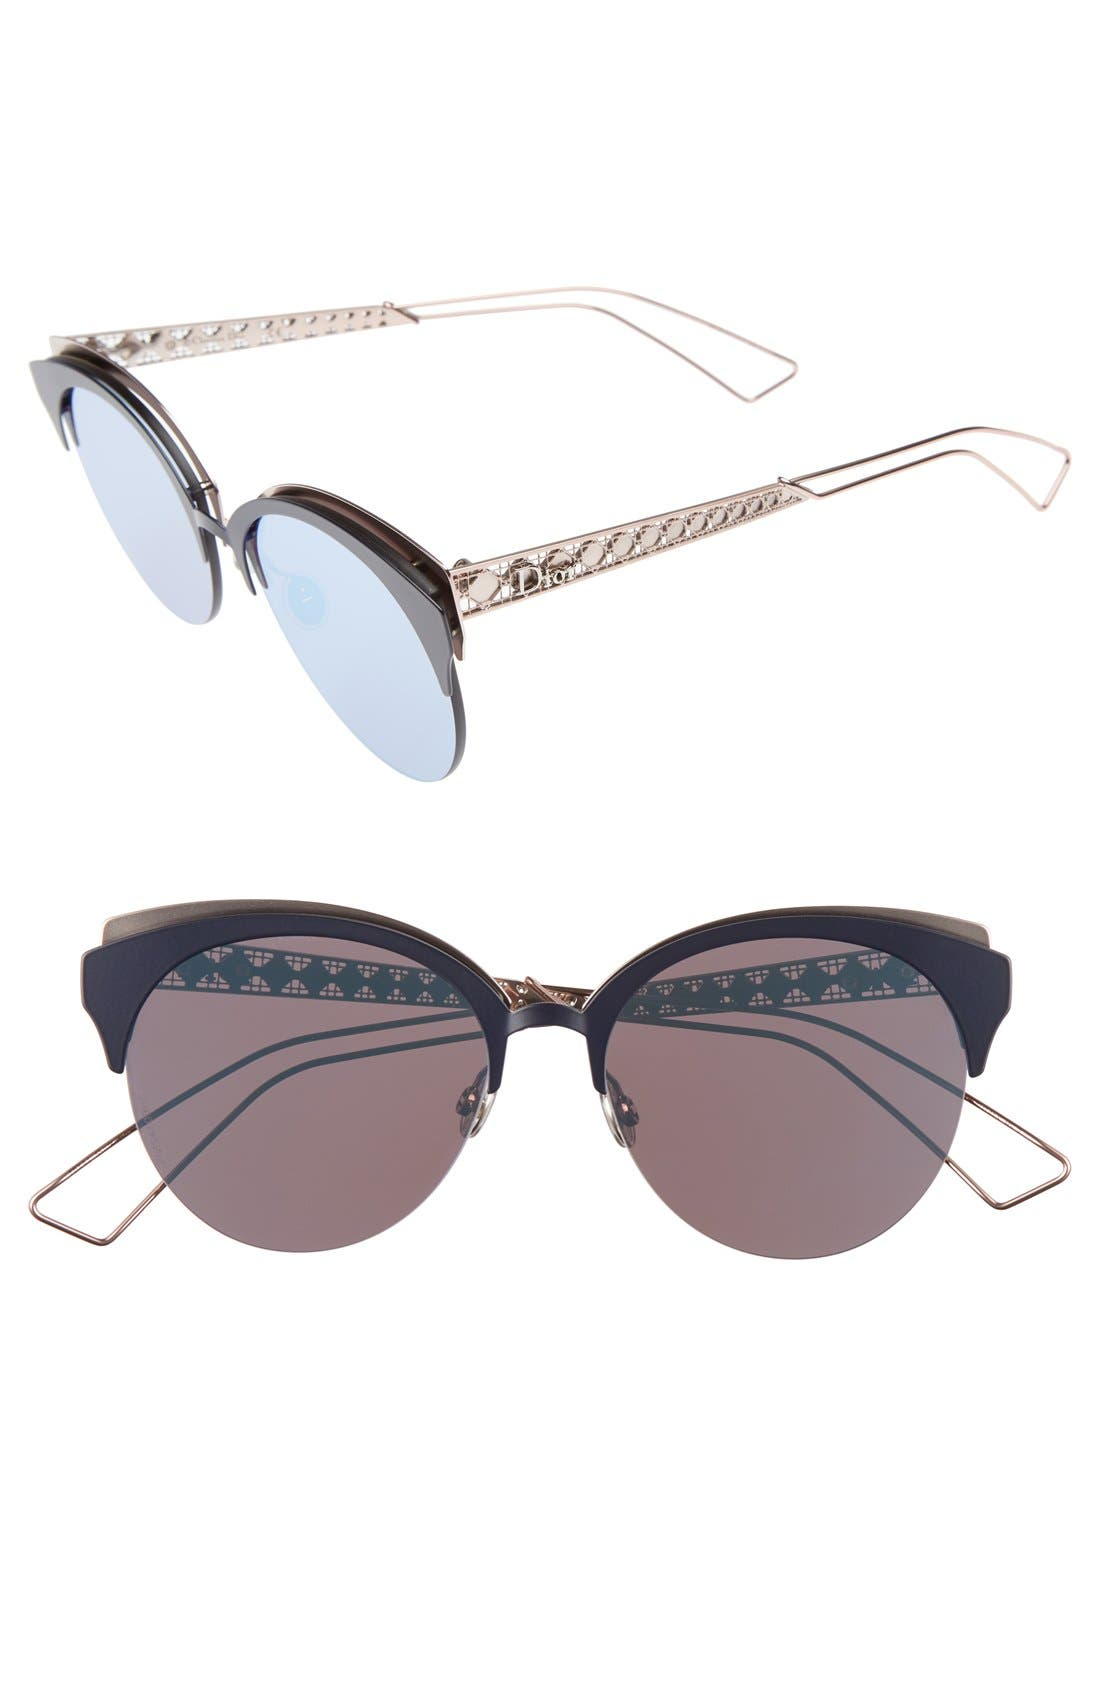 Dior Clubs 55mm Sunglasses